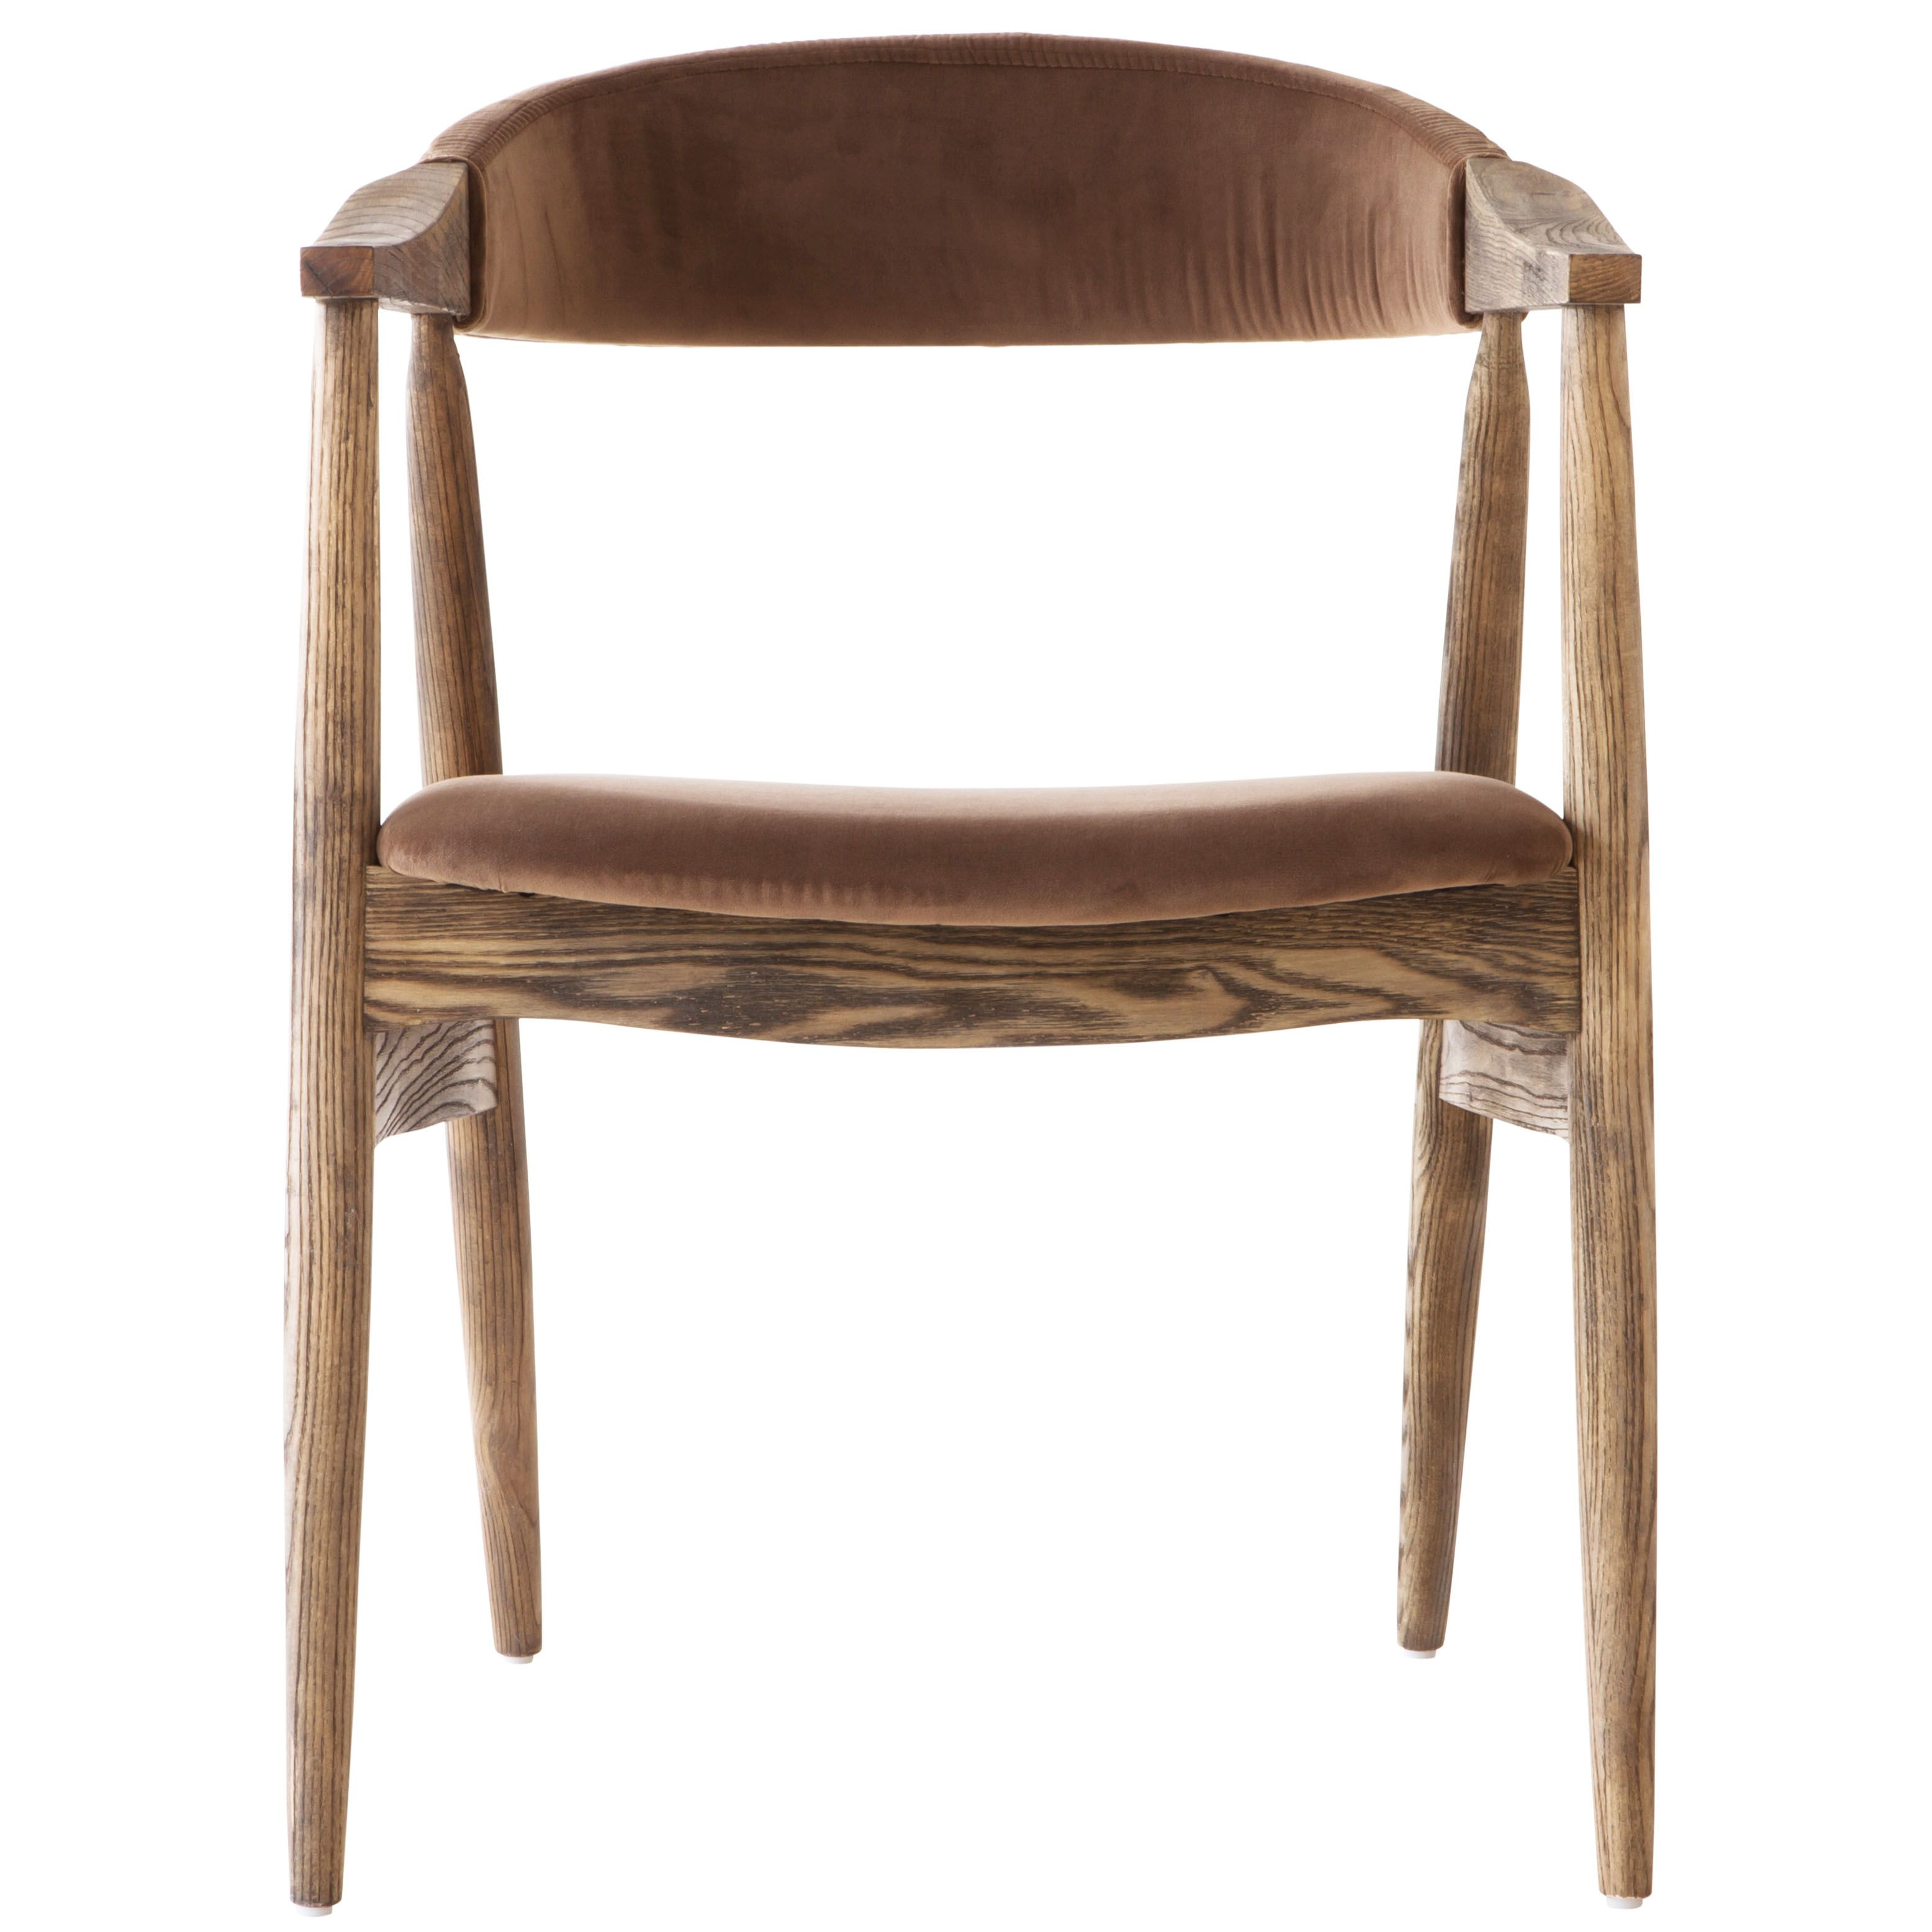 Pin by Wayne Mongie on Proof Dining chairs, Chair